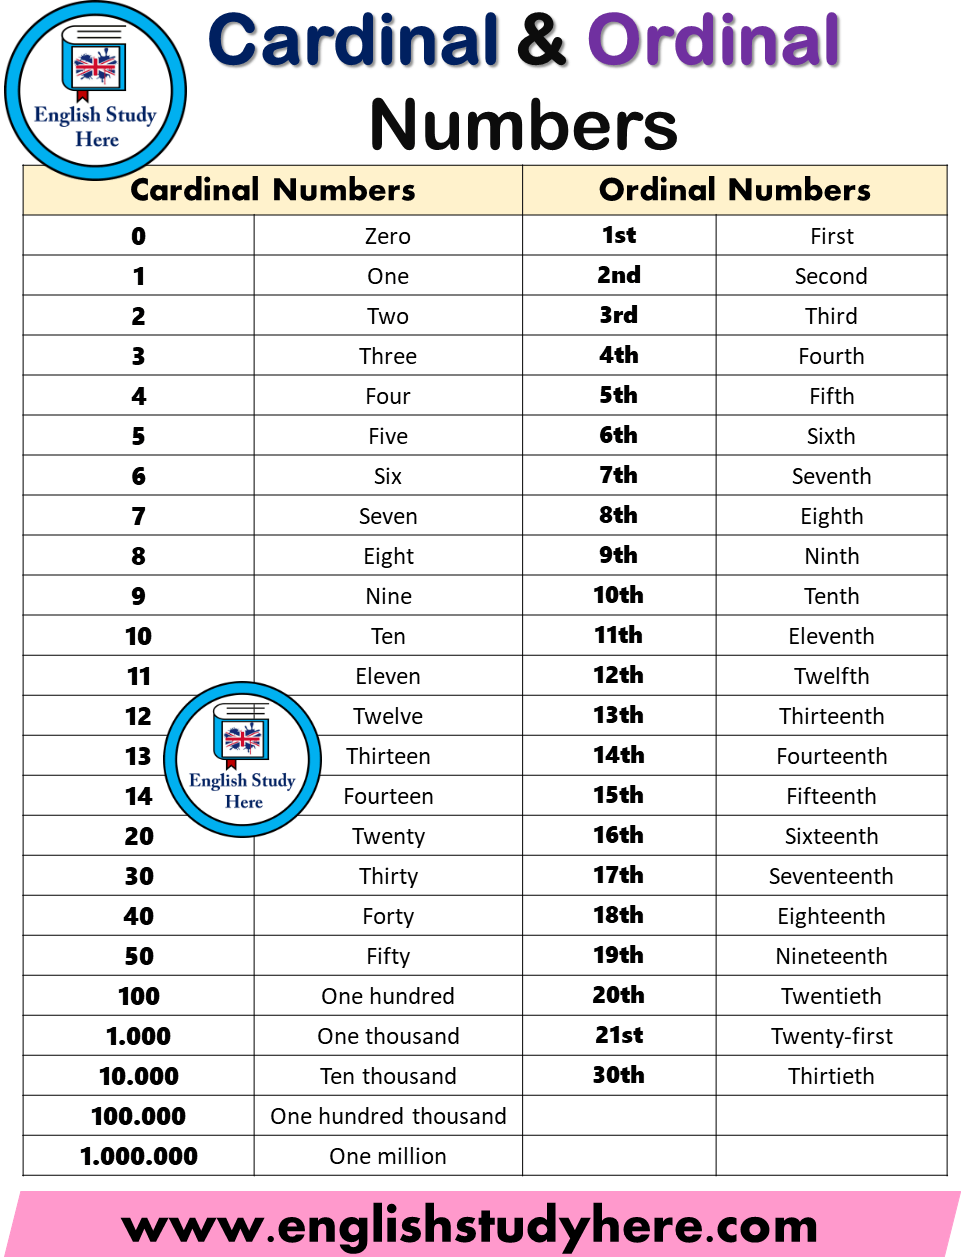 Cardinal Numbers and Ordinal Numbers